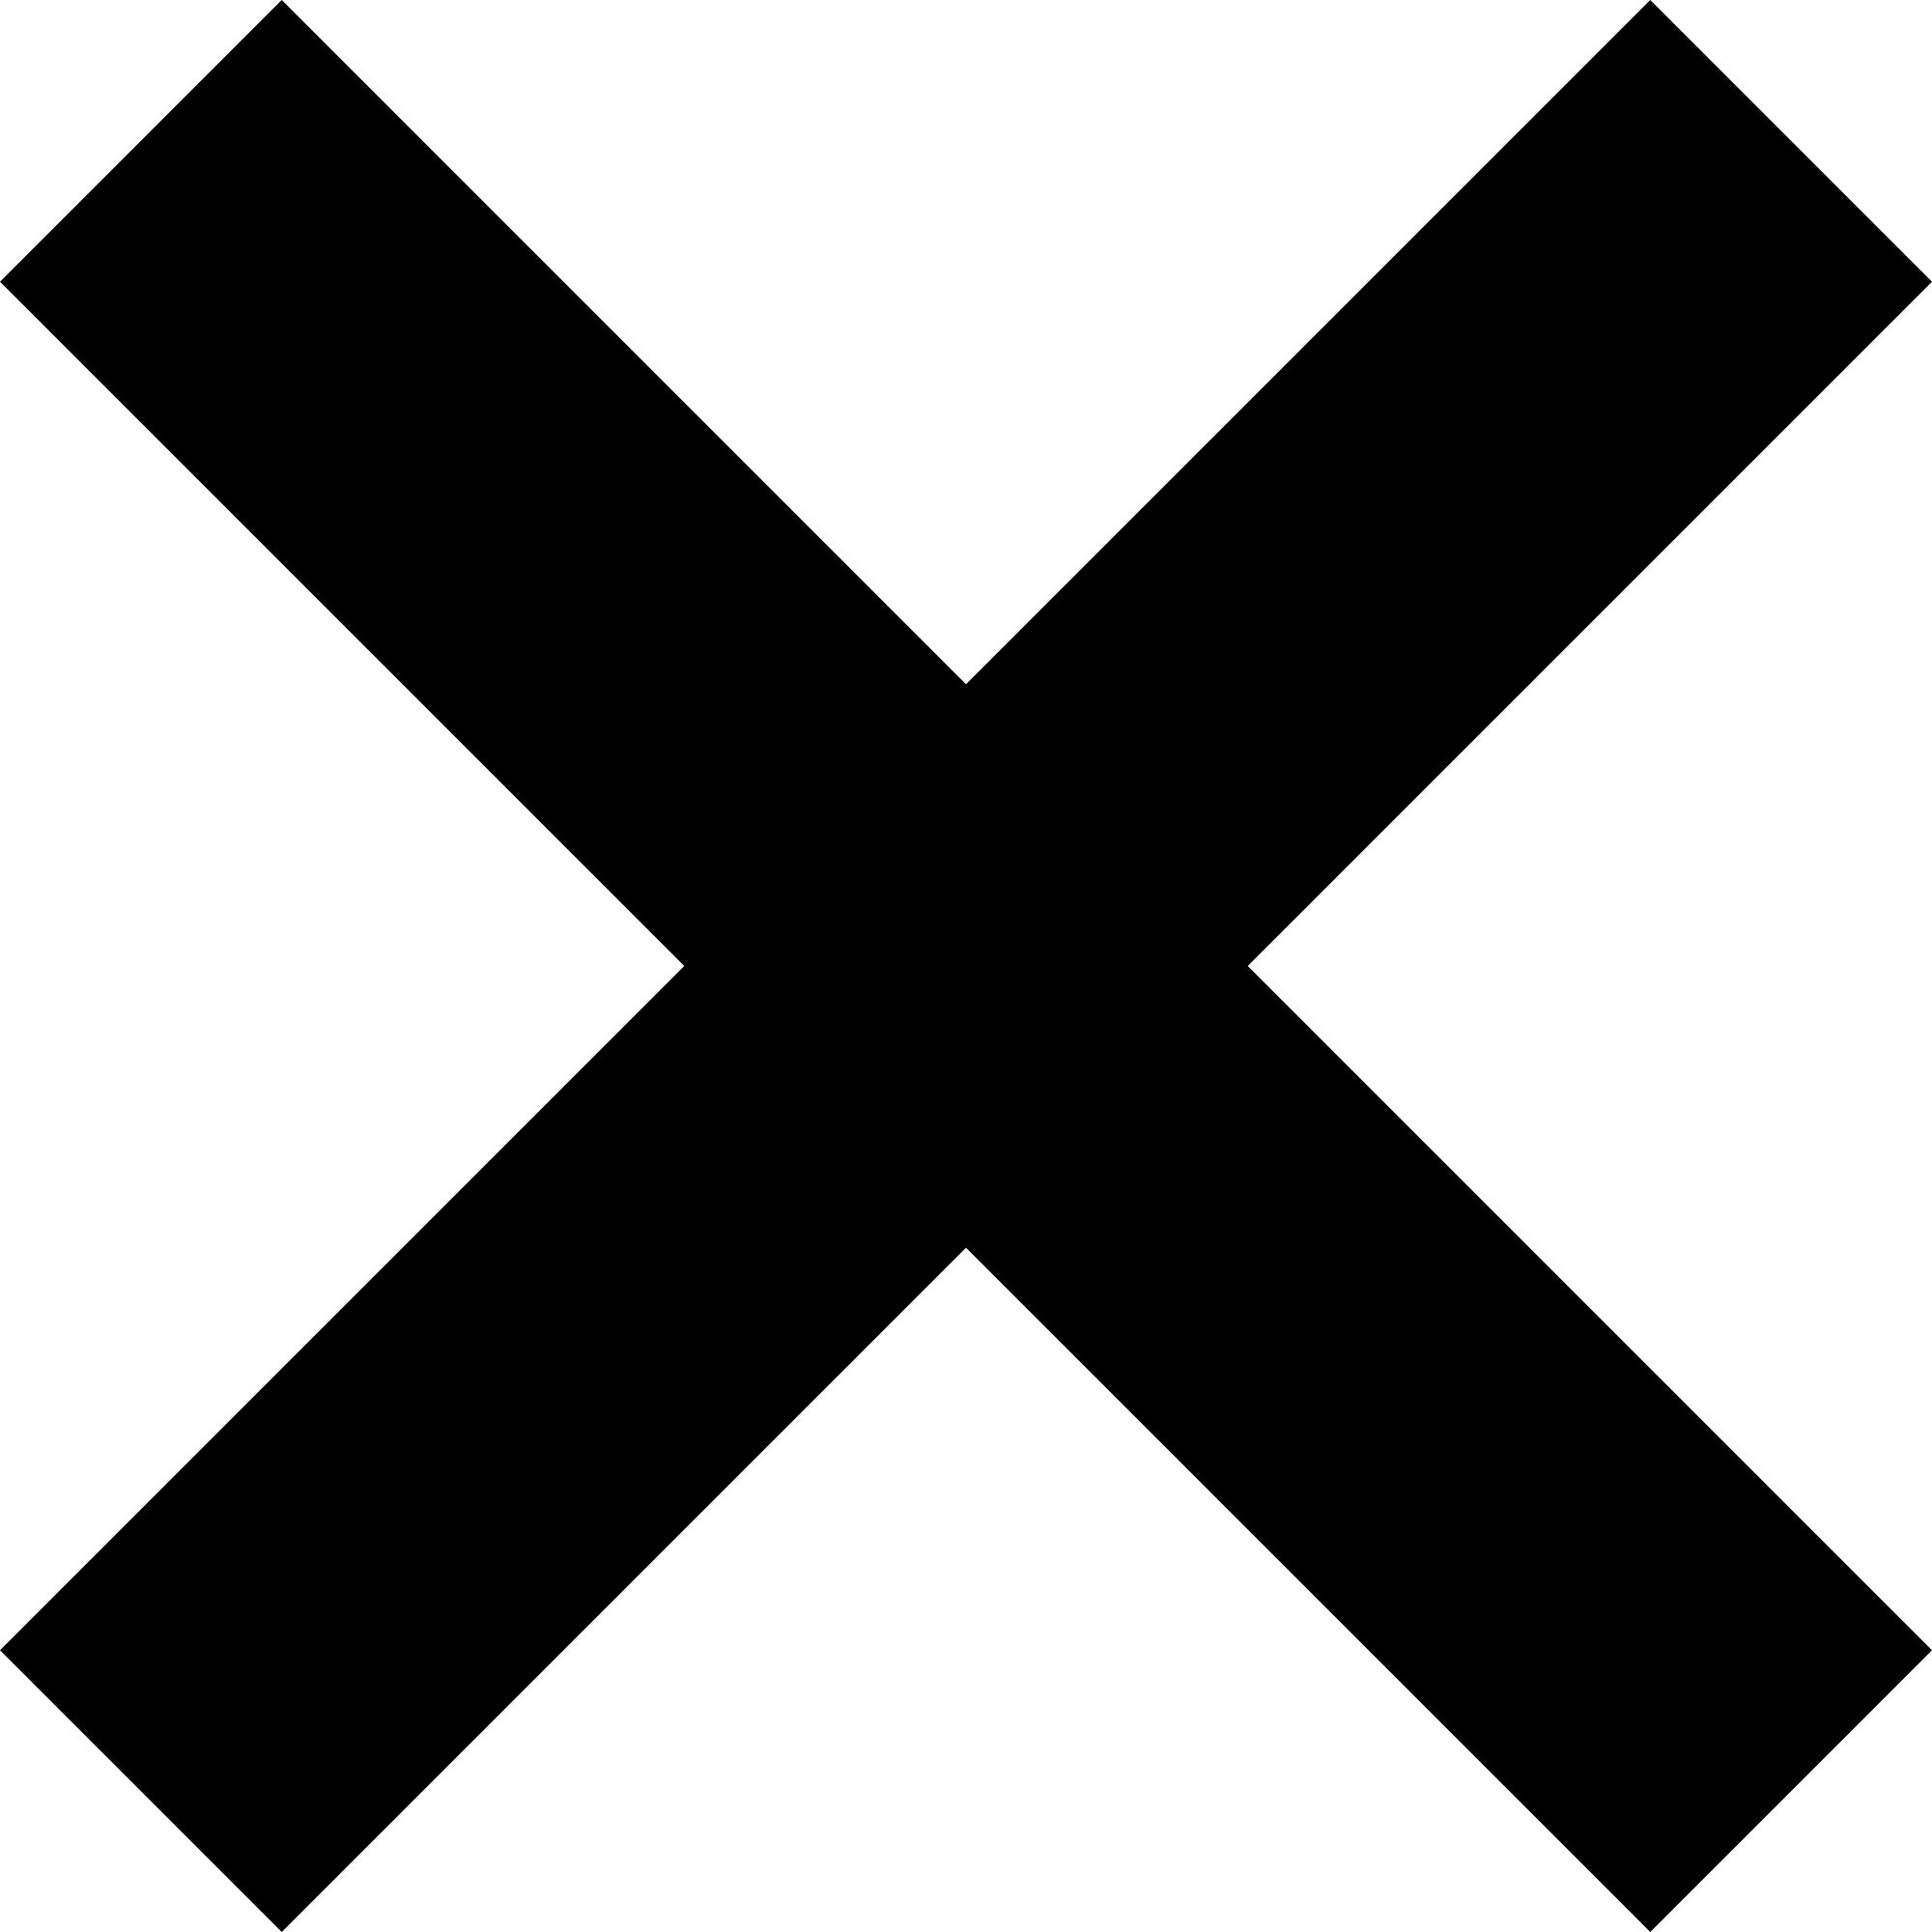 Black x png. File close svg wikimedia